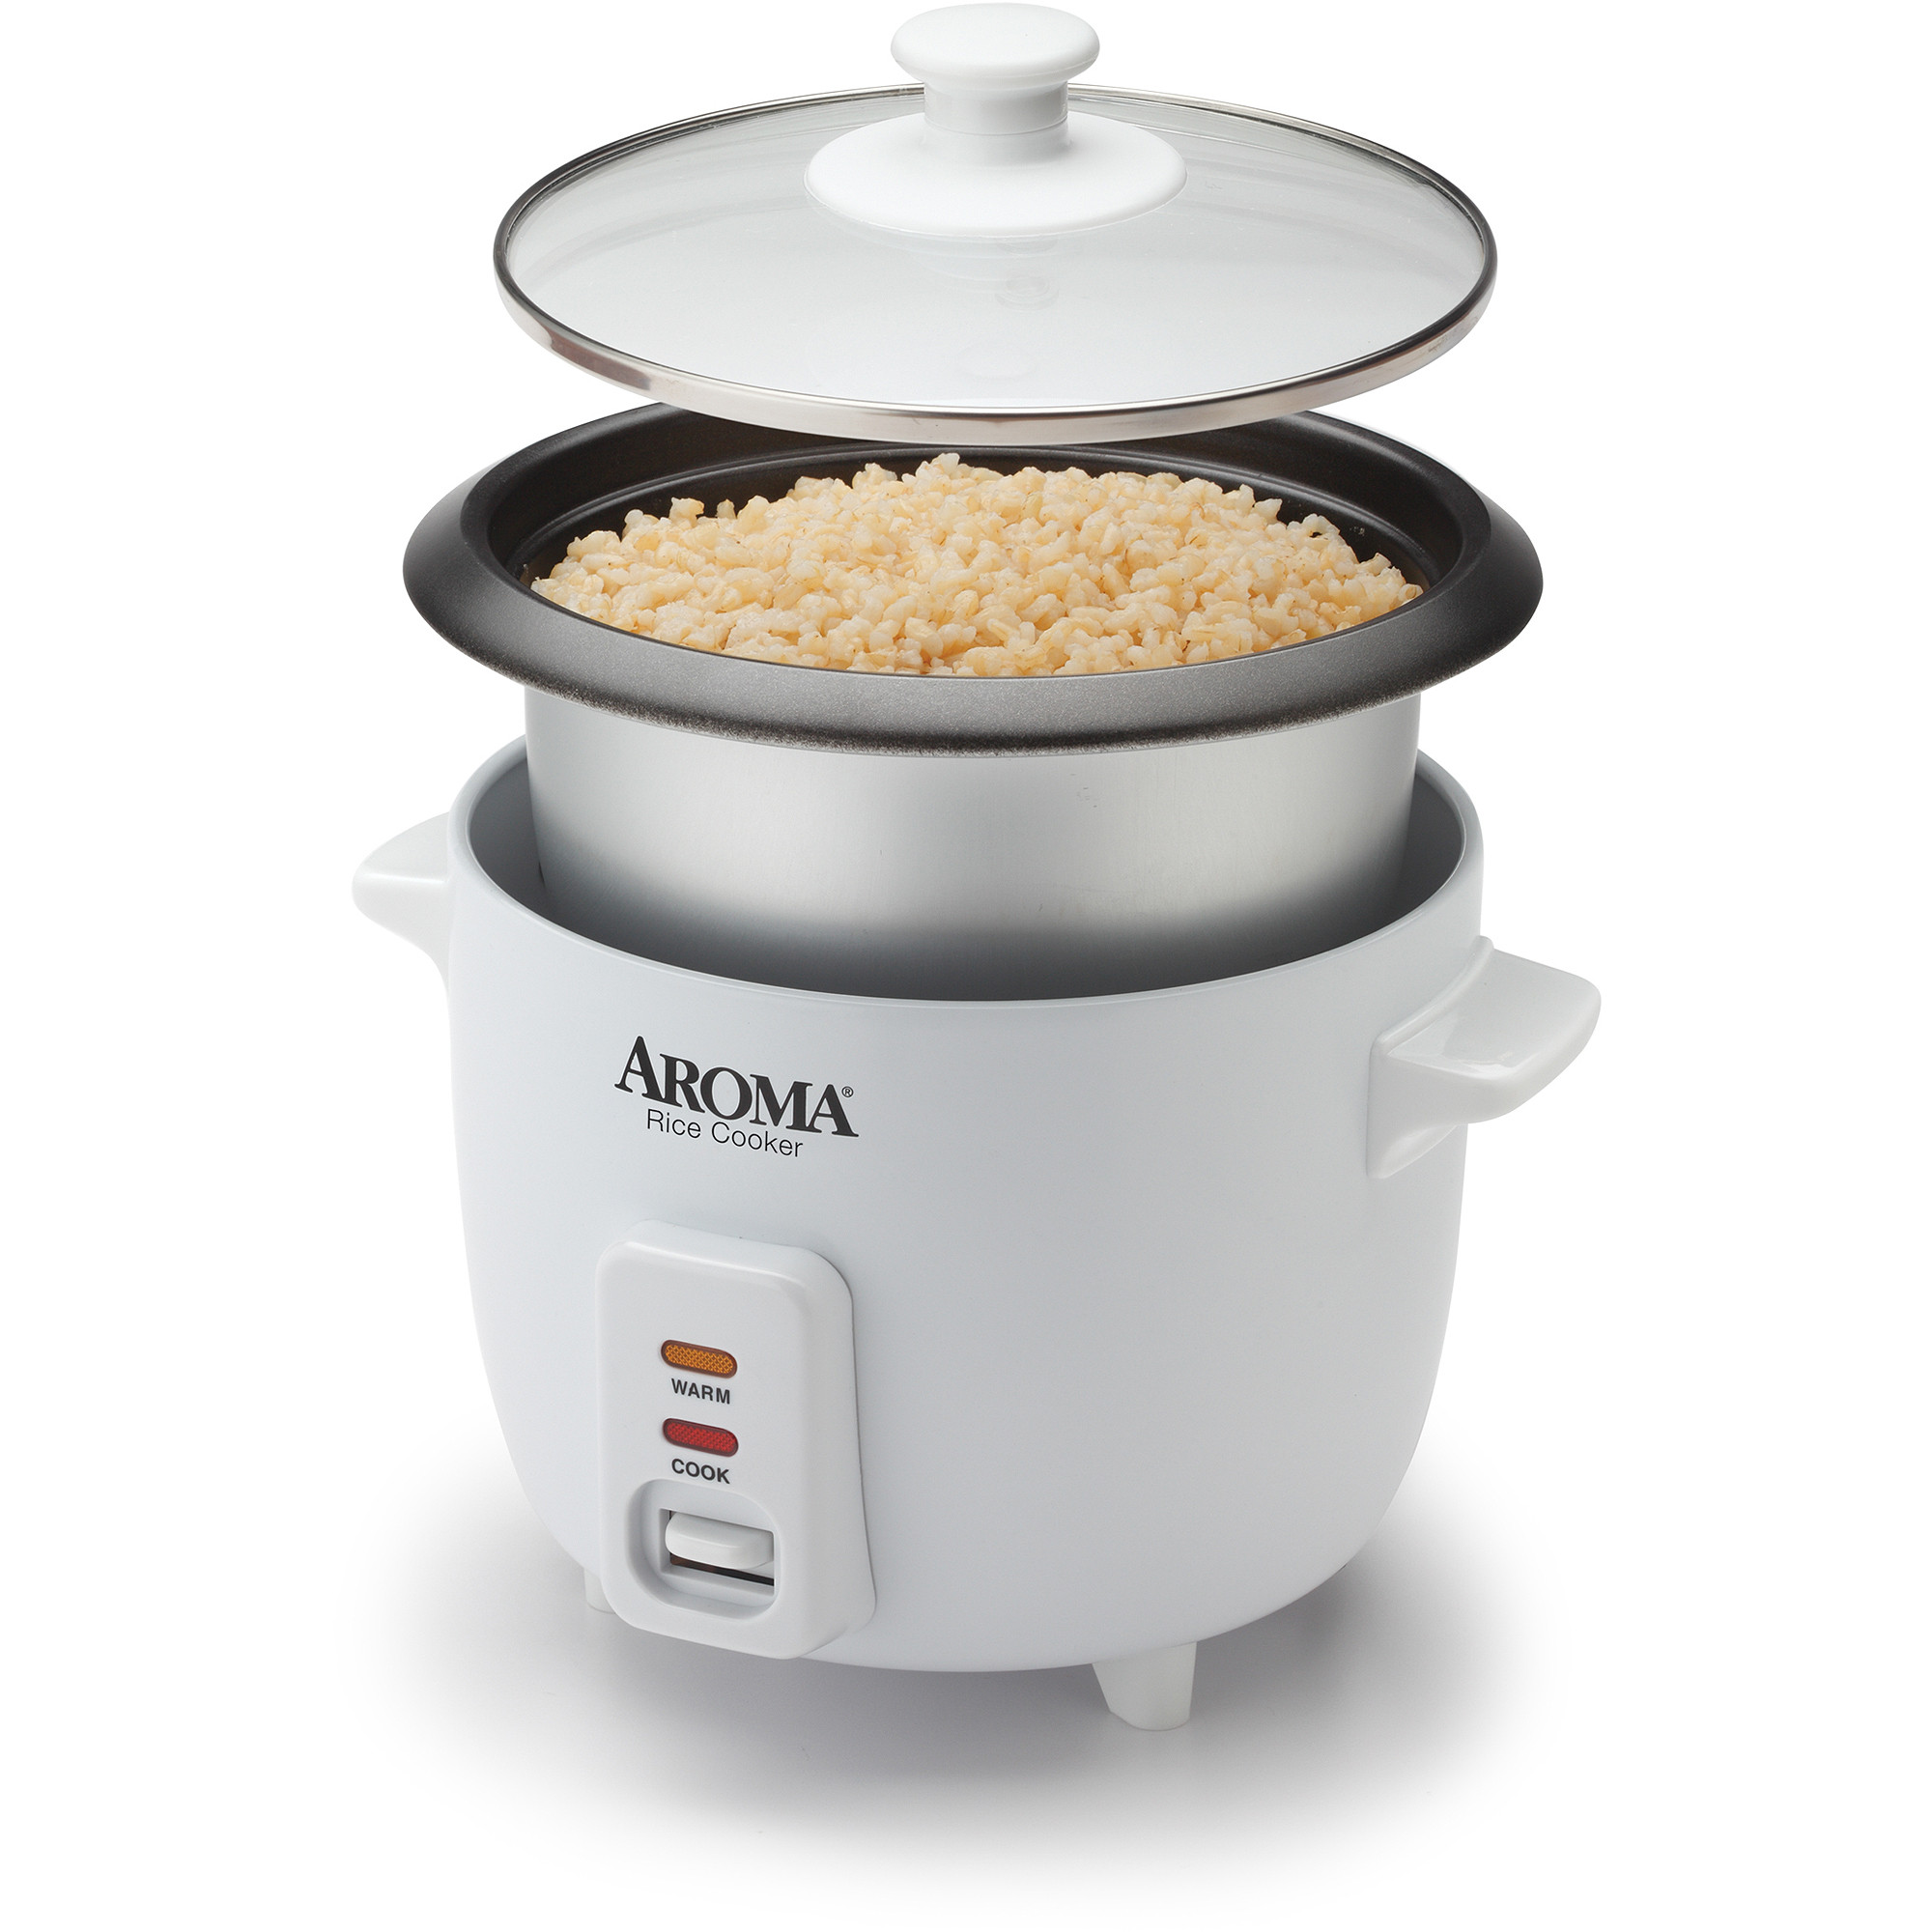 Cook Brown Rice In Rice Cooker  brown rice in aroma rice cooker